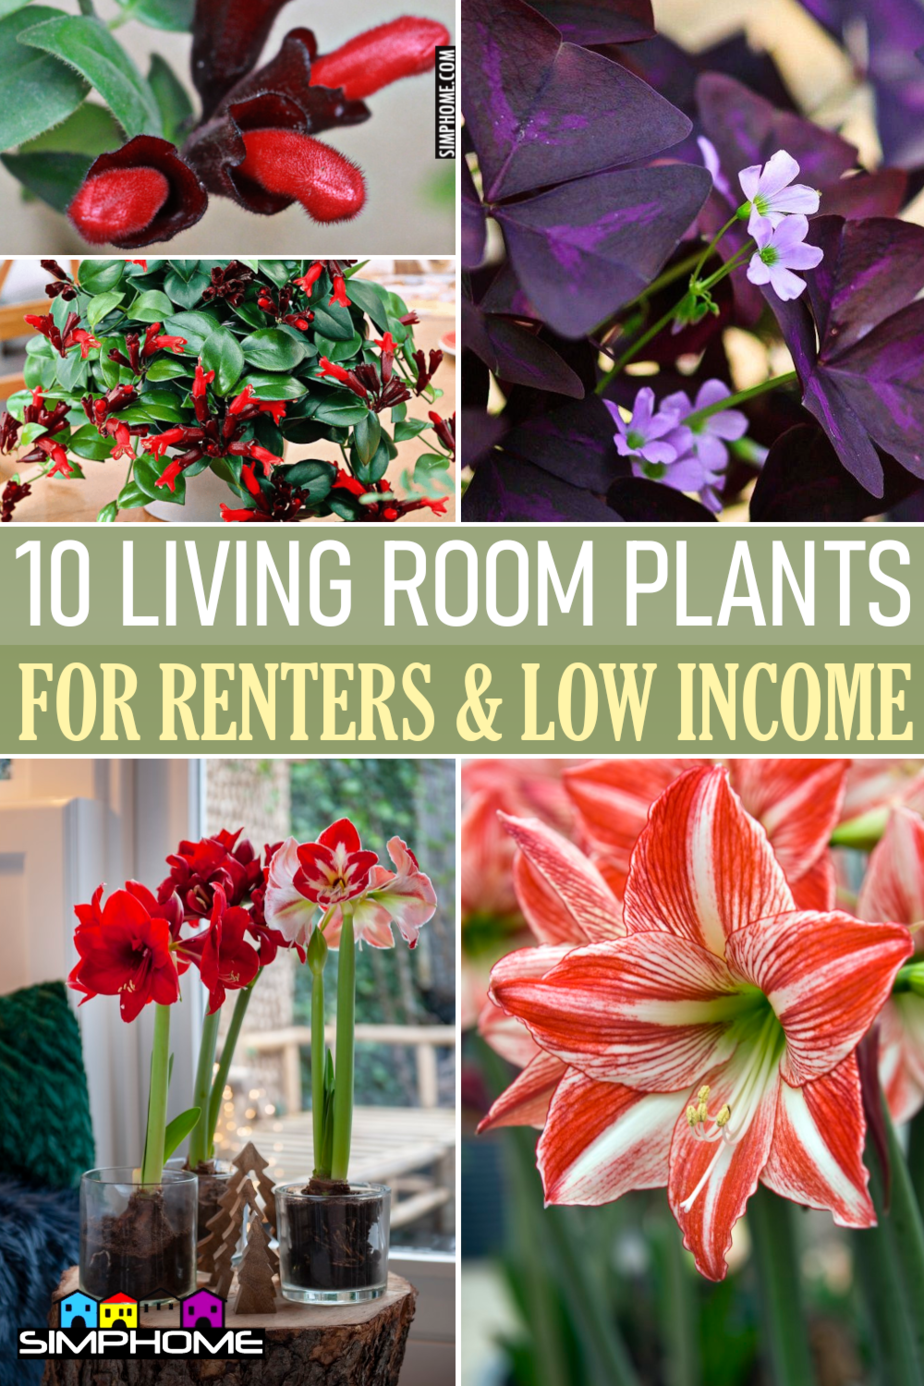 10 Living Room Plants Recommended for Renters and Low Income House Owner via Simphome.comFeatured